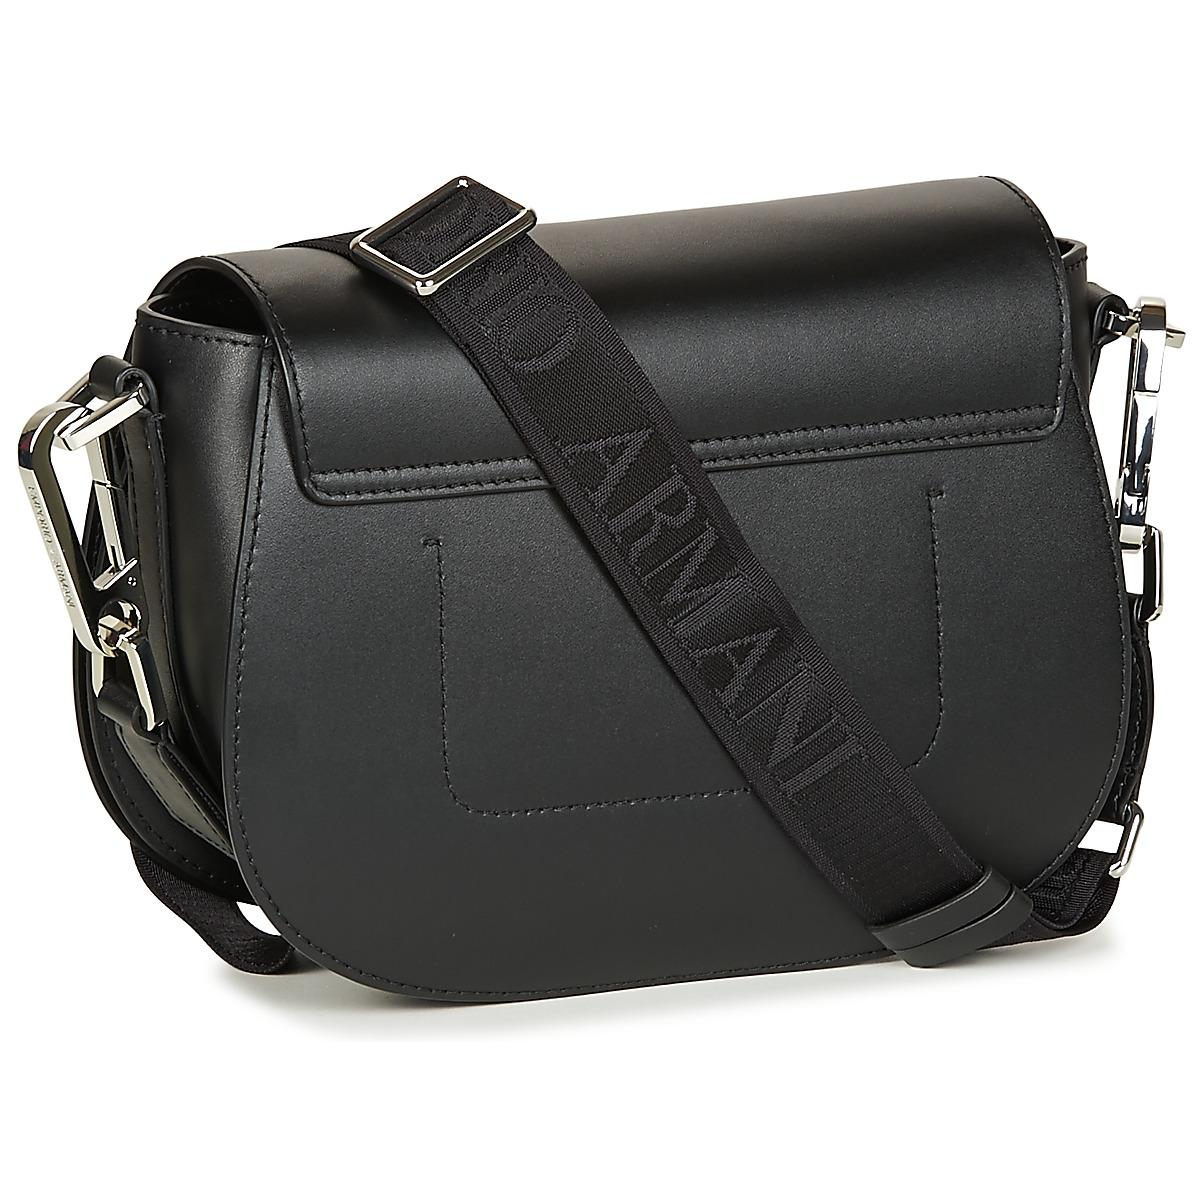 Emporio Armani - Black PEGGY Shoulder Bag Shoulder Bag - Lyst. View  fullscreen 894a55792d75b